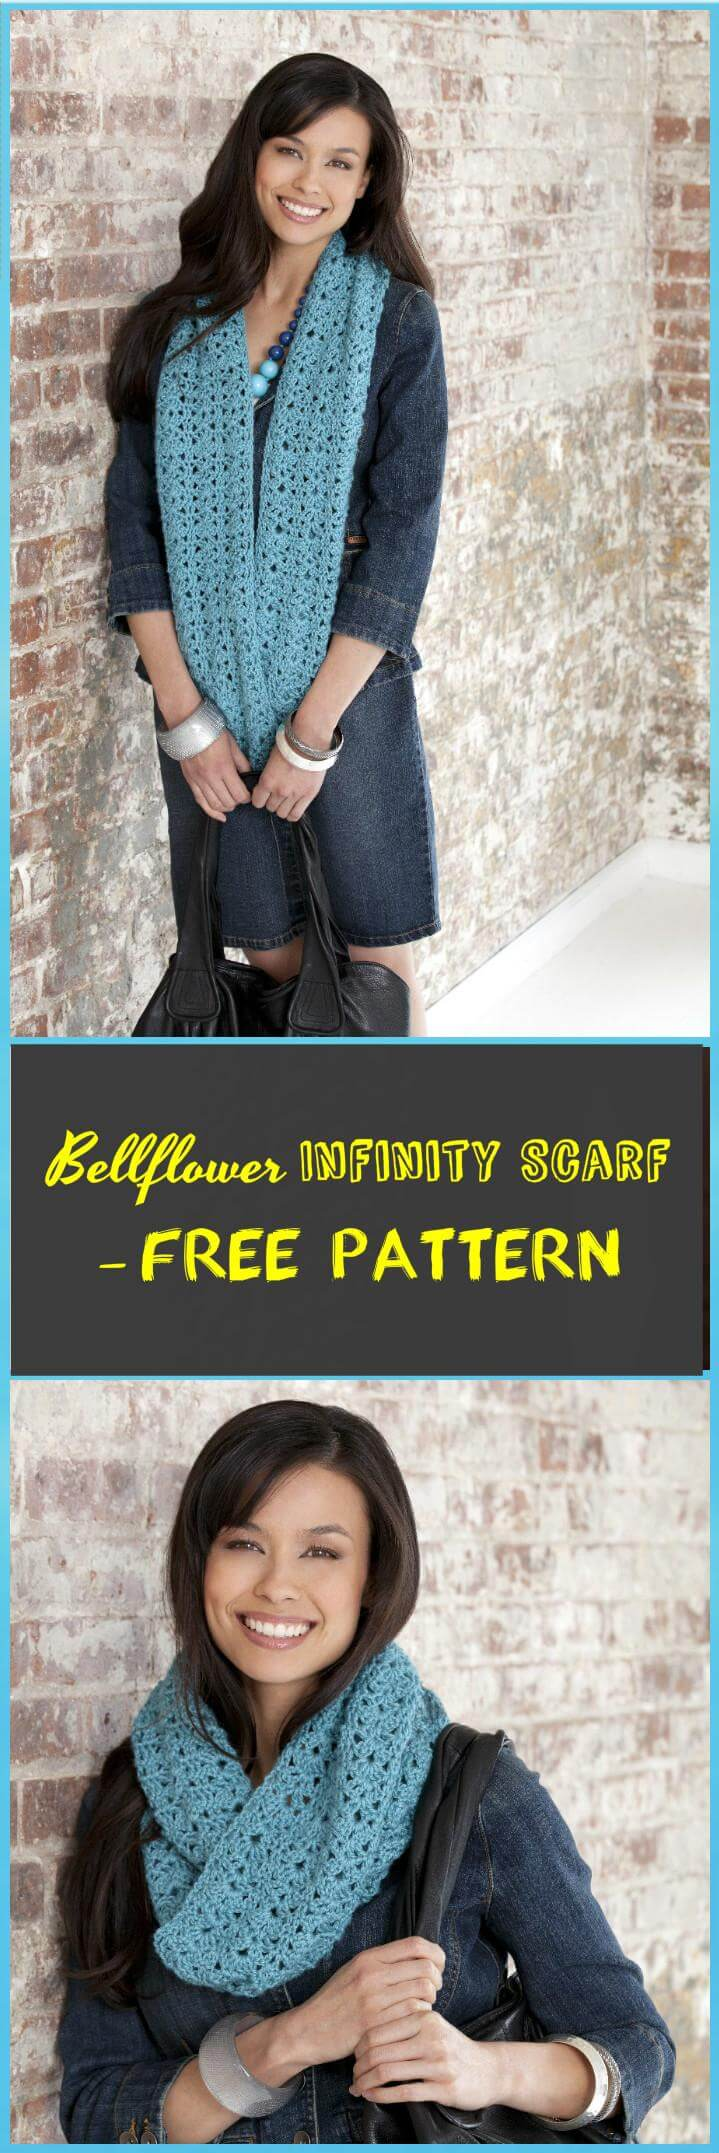 easy bellflower infinity scarf free pattern